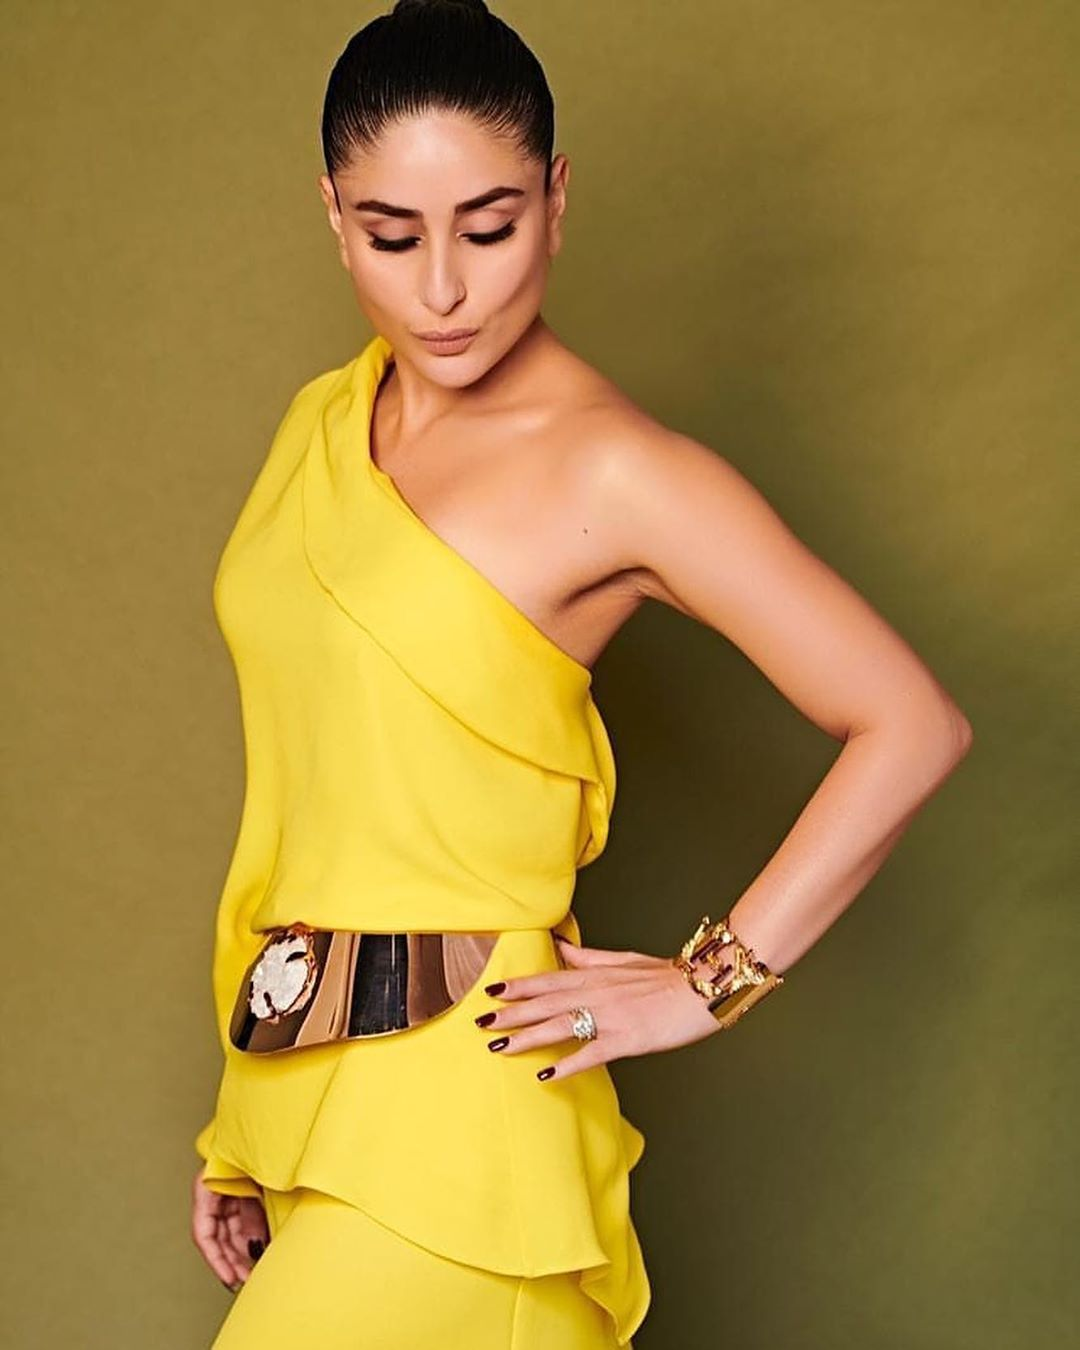 Kareena Kapoor Khan make a fashion blunder with this thigh-high slit gown